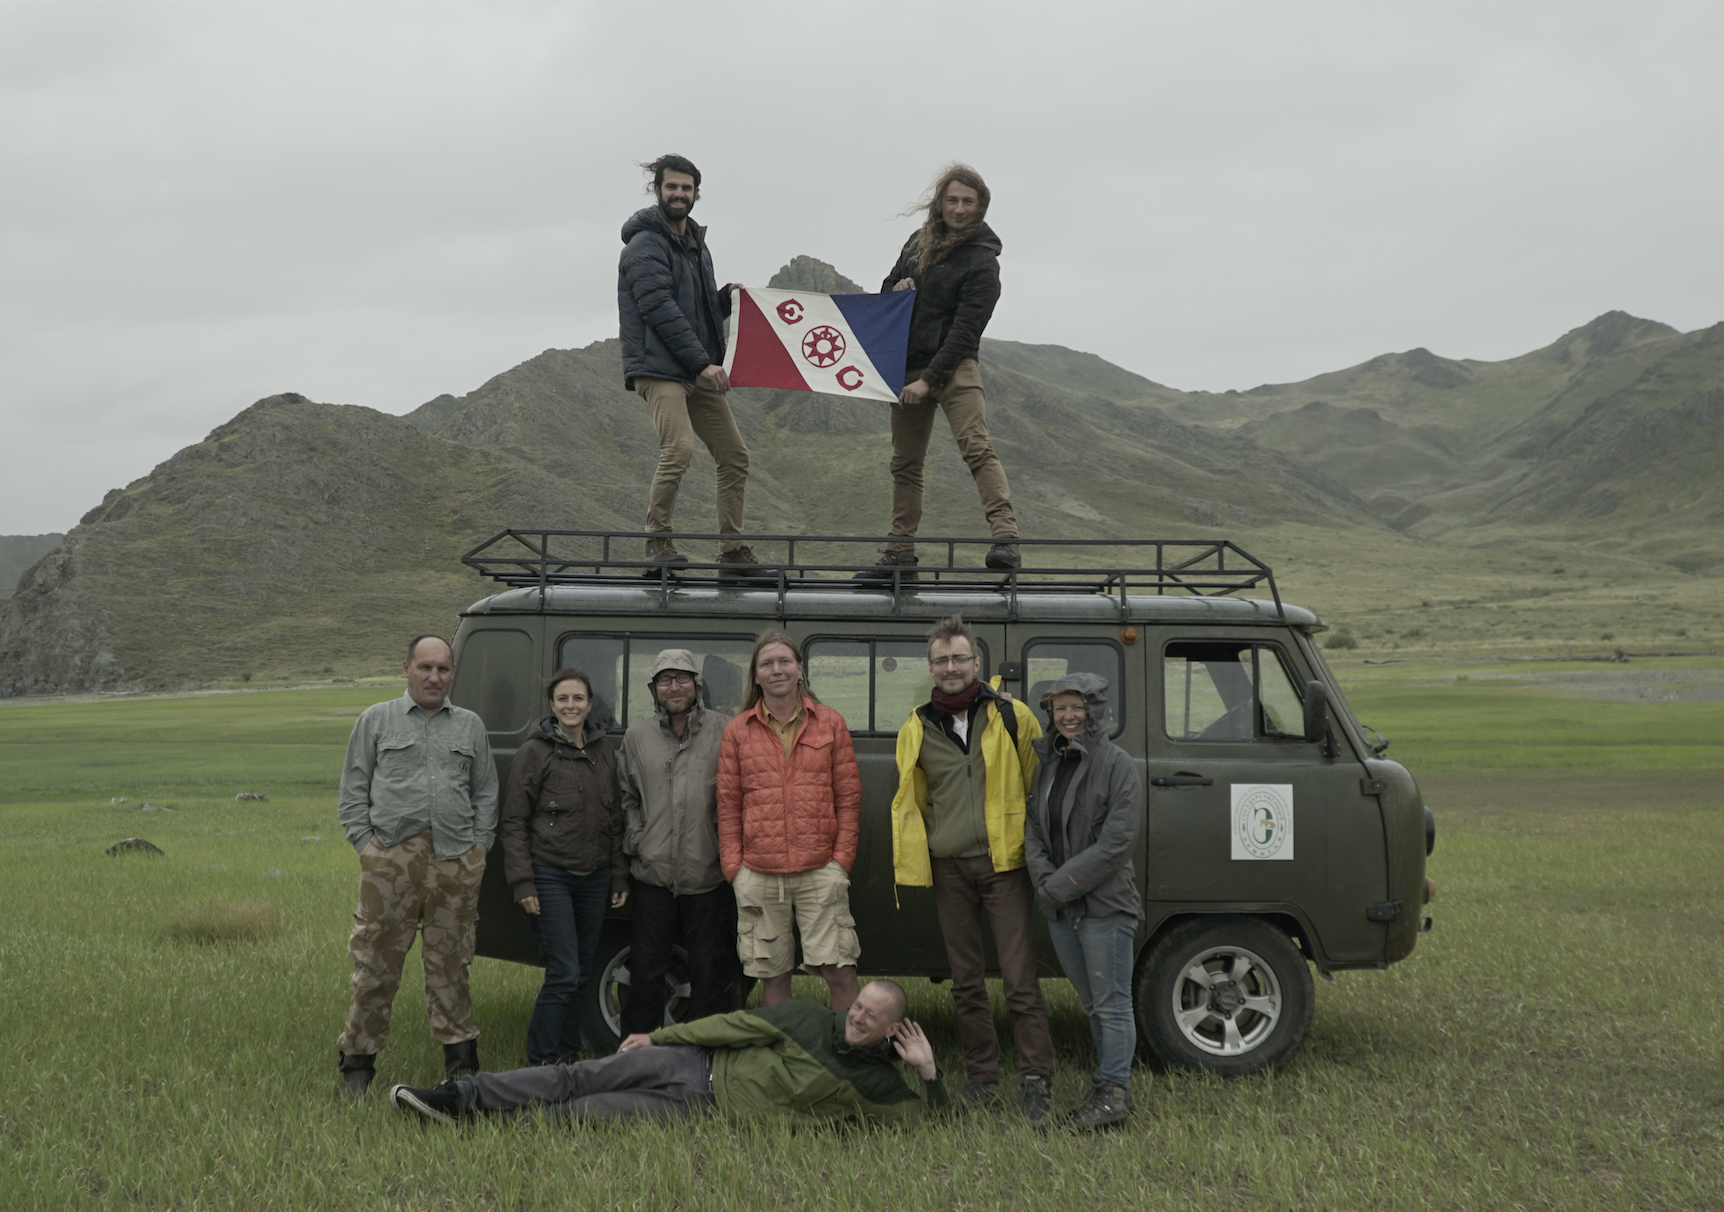 In 2017 Dr. Caspari started a collaboration with Timur Sadykov and Jegor Blochin of the Russian Academy of Sciences with the aim of excavating an iron age tomb in the Valley of the Tsars in Siberia. This is the first team assembled for the survey expedition with Explorers Club Flag 134. [Top to Bottom-Left to Right] Trevor Wallace (expedition filmmaker) Dr. Gino Caspari (expedition leader) Anatolie Luboshnikov (driver) Valeria Makarova (volunteering archaeologist) Maxim Eltsov (soil scientist) Timur Sadykov (Russian expedition leader, license holder) Jegor Blochin (technical lead) Katarzyna Langenegger (volunteering archaeologist) Jegor Mazurkievich (cook) Not pictured: Kezhik Mongush (student)